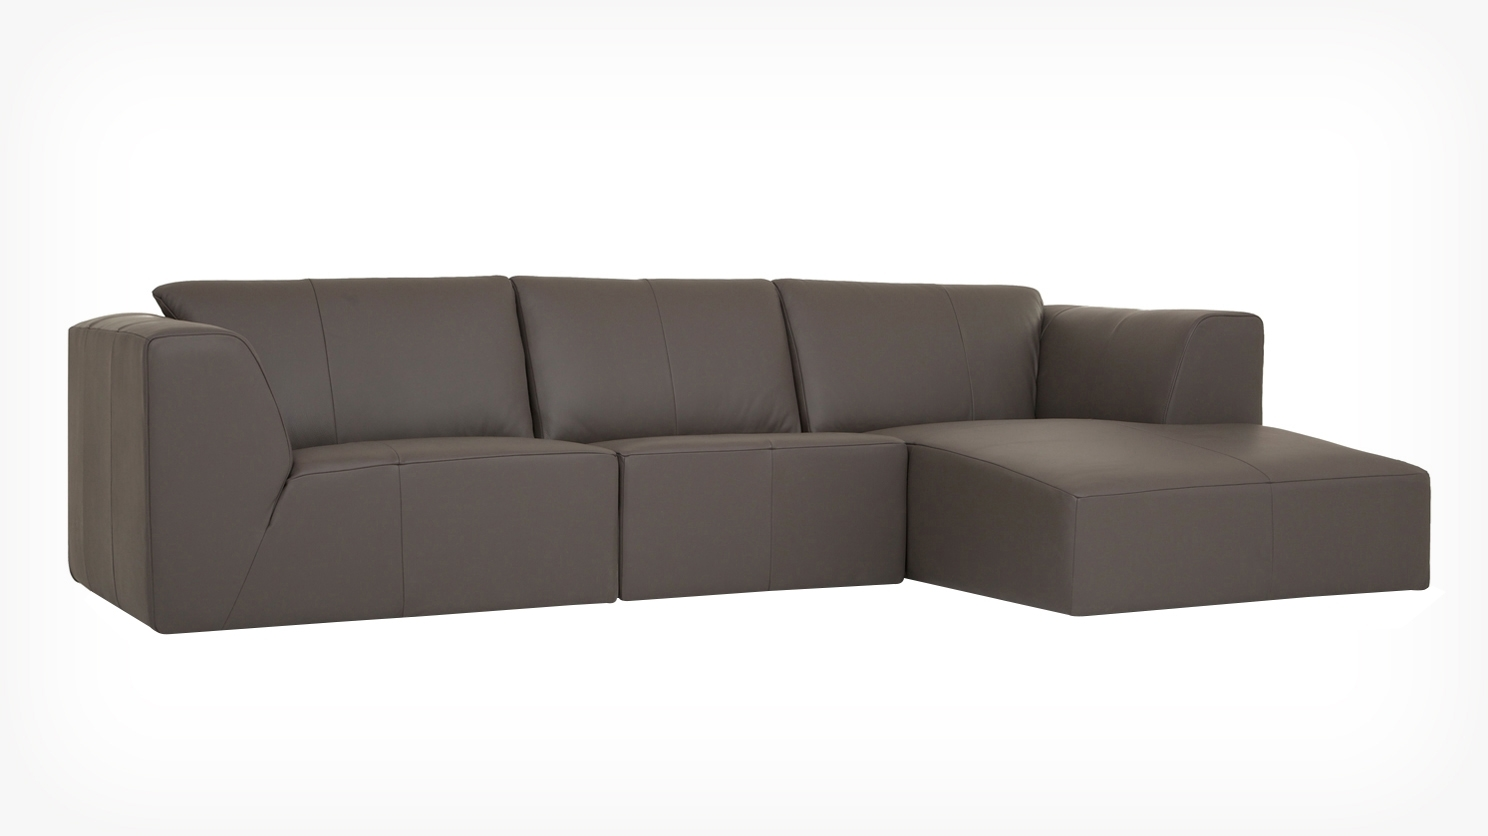 Eq3 | Morten 3 Piece Sectional Sofa With Chaise – Leather Inside Eq3 Sectional Sofas (View 5 of 10)